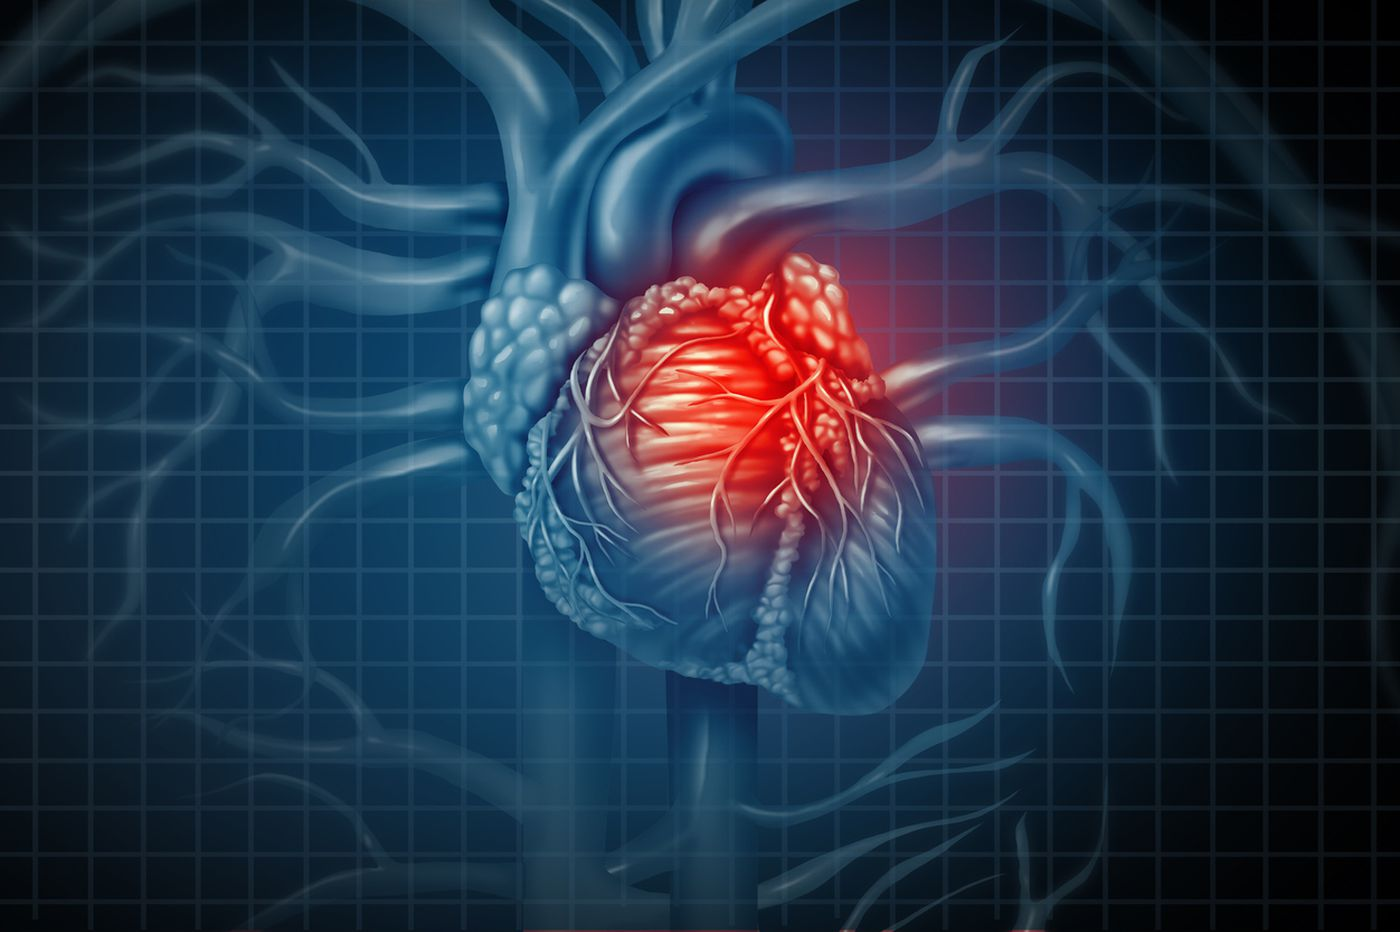 Q&A: How do I know if I'm having a 'silent' heart attack?